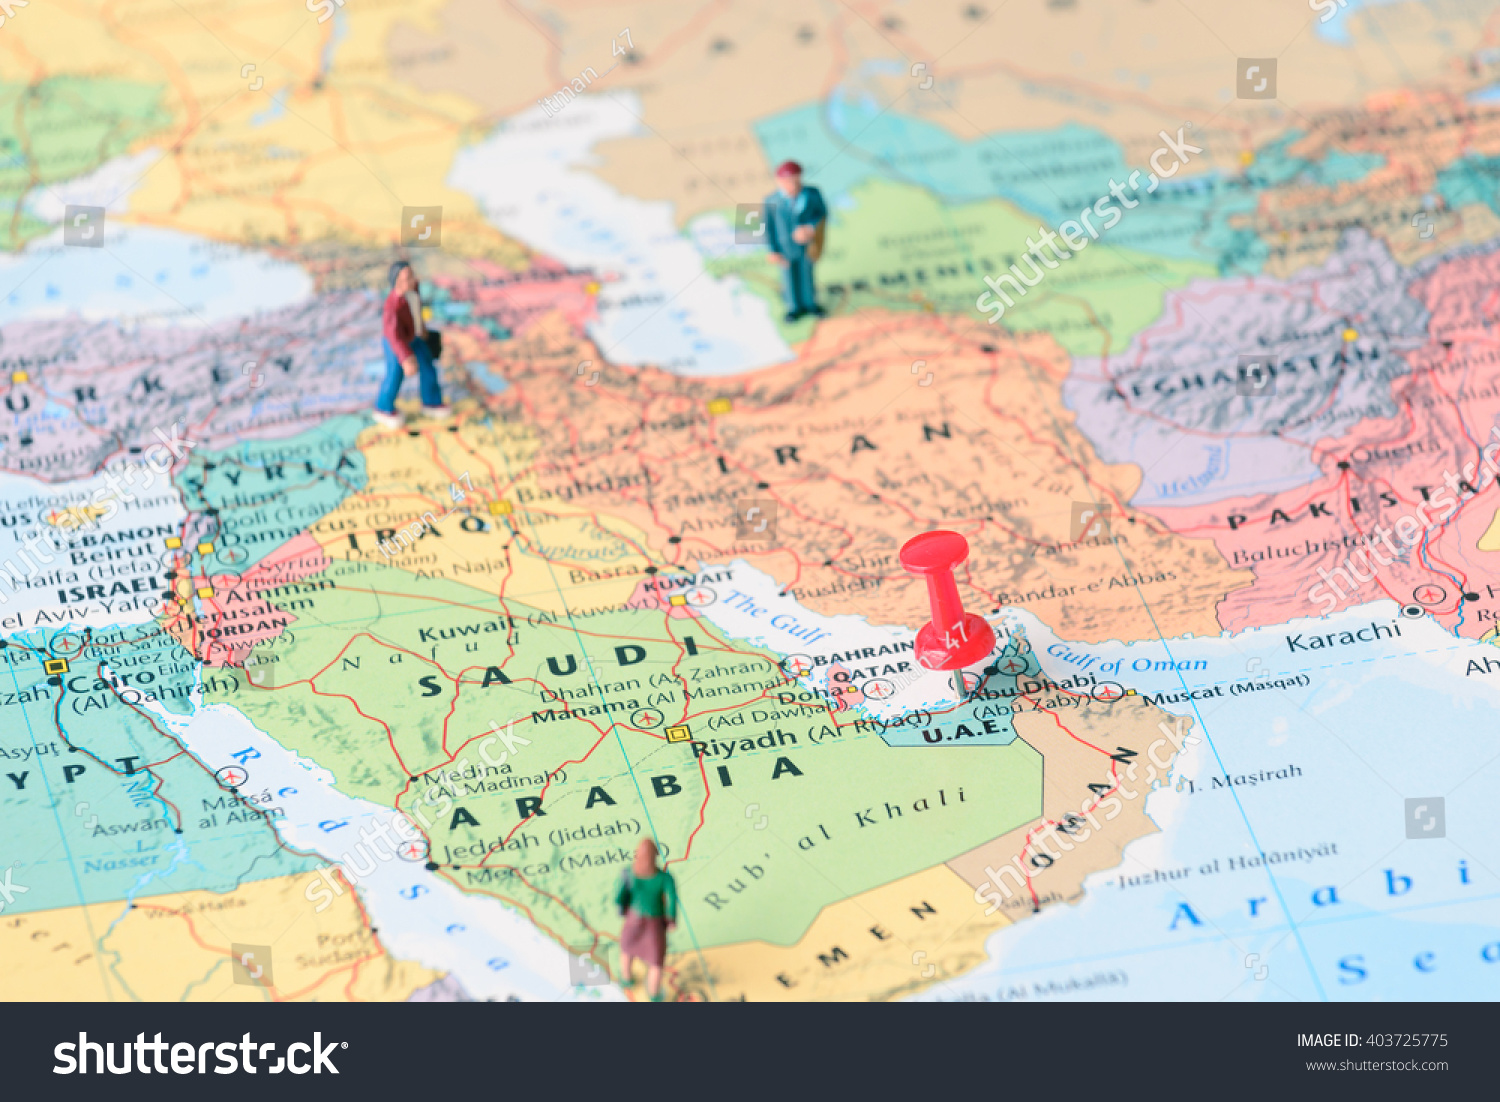 Pinned On Map Dubai Uae Miniature Stock Photo Edit Now 403725775